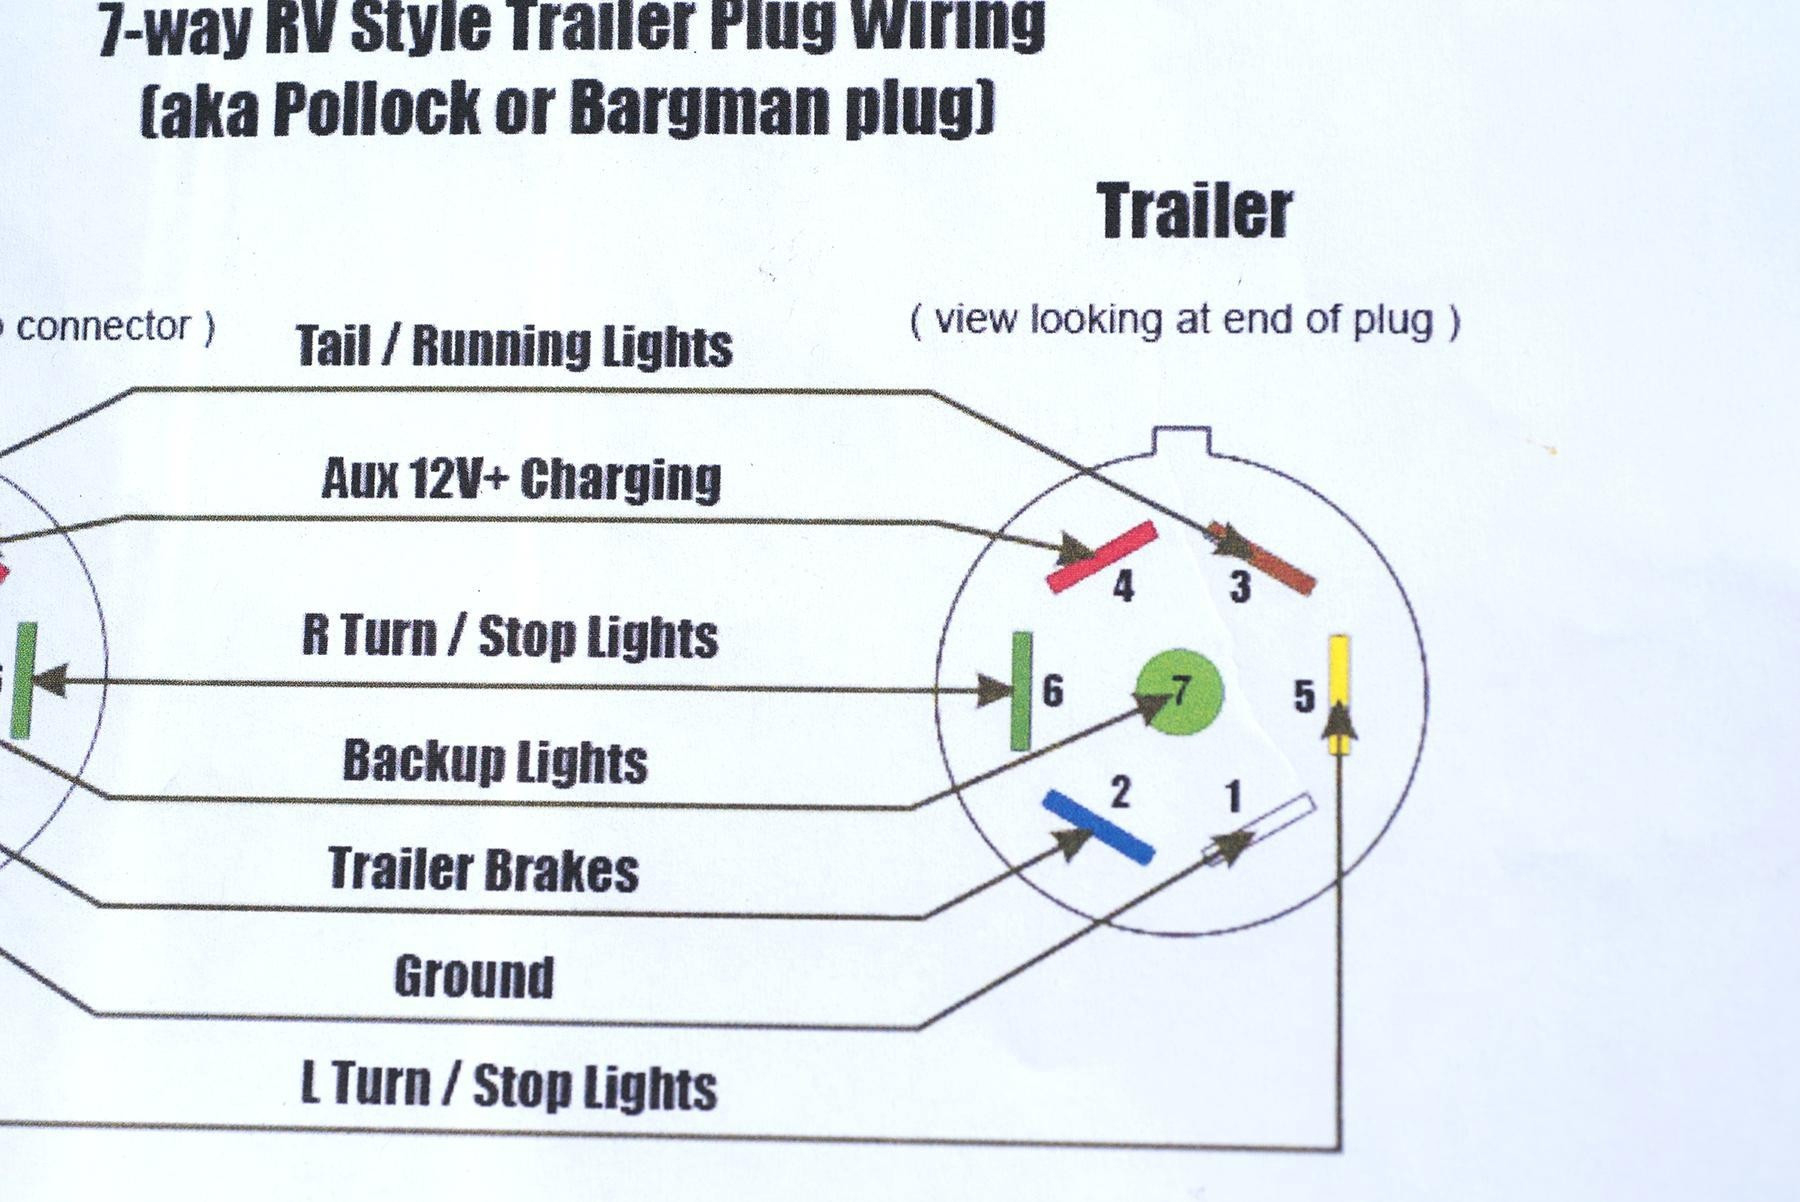 Gmc 7 Way Plug Wiring - Wiring Diagrams Hubs - 7 Way Trailer Plug Wiring Diagram Gmc